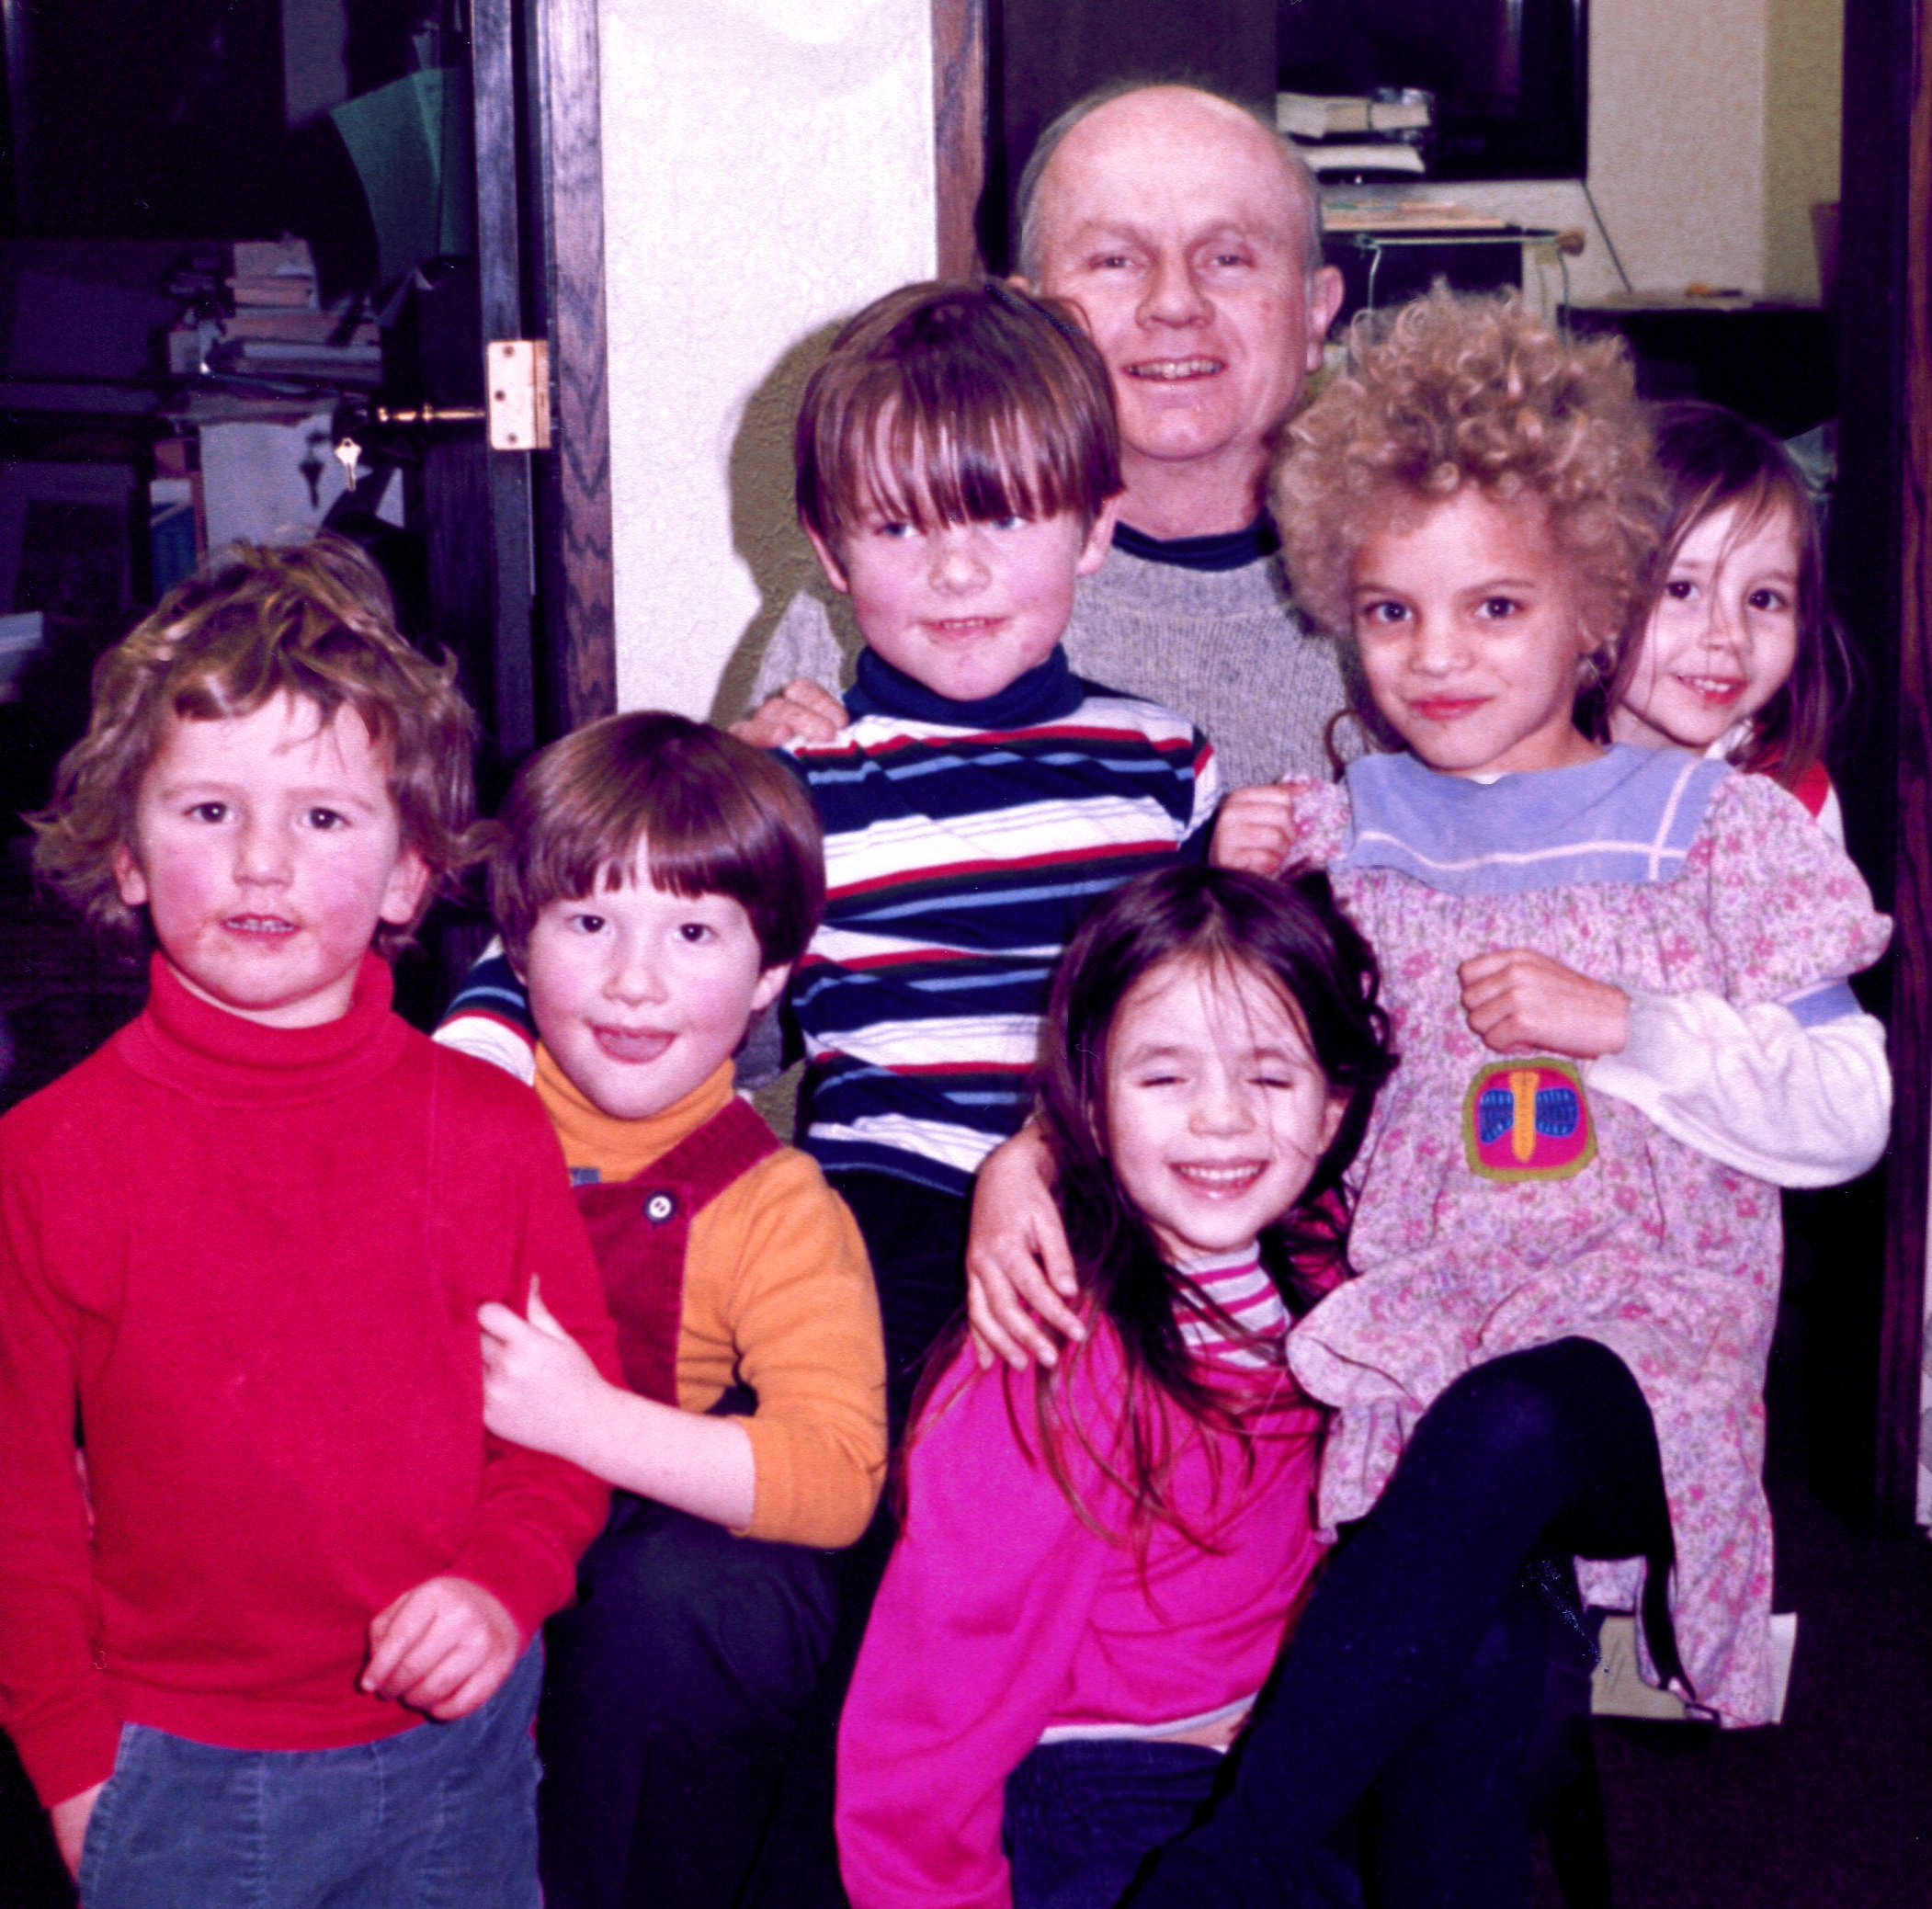 John Holt with children who came to the office with their volunteer parents.  From left to right: Joshua Gray, Solon Sadoway, Chris Gray, Danette Finn, as-yet unidentified child (anyone know who she is?), and Bridget Finn. Photo taken by Maggie Sadoway.